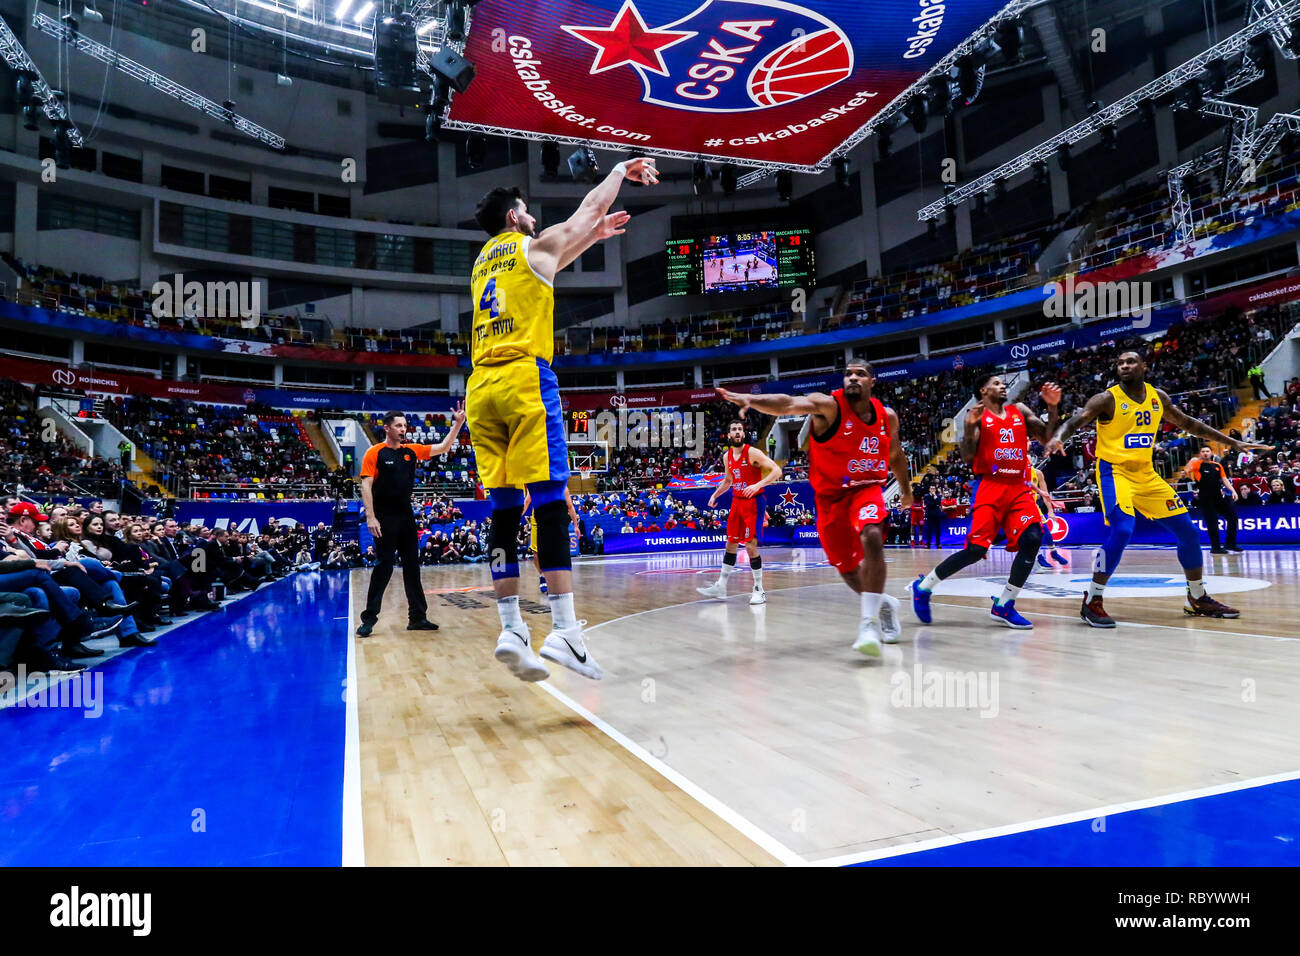 Angelo Caloiaro, #4 of Maccabi Tel Aviv, seen in action against CSKA Moscow in Round 18 of the Turkish Airlines Euroleague game of the 2018-2019 season.  Maccabi Tel Aviv beat CSKA Moscow, 93-76. - Stock Image